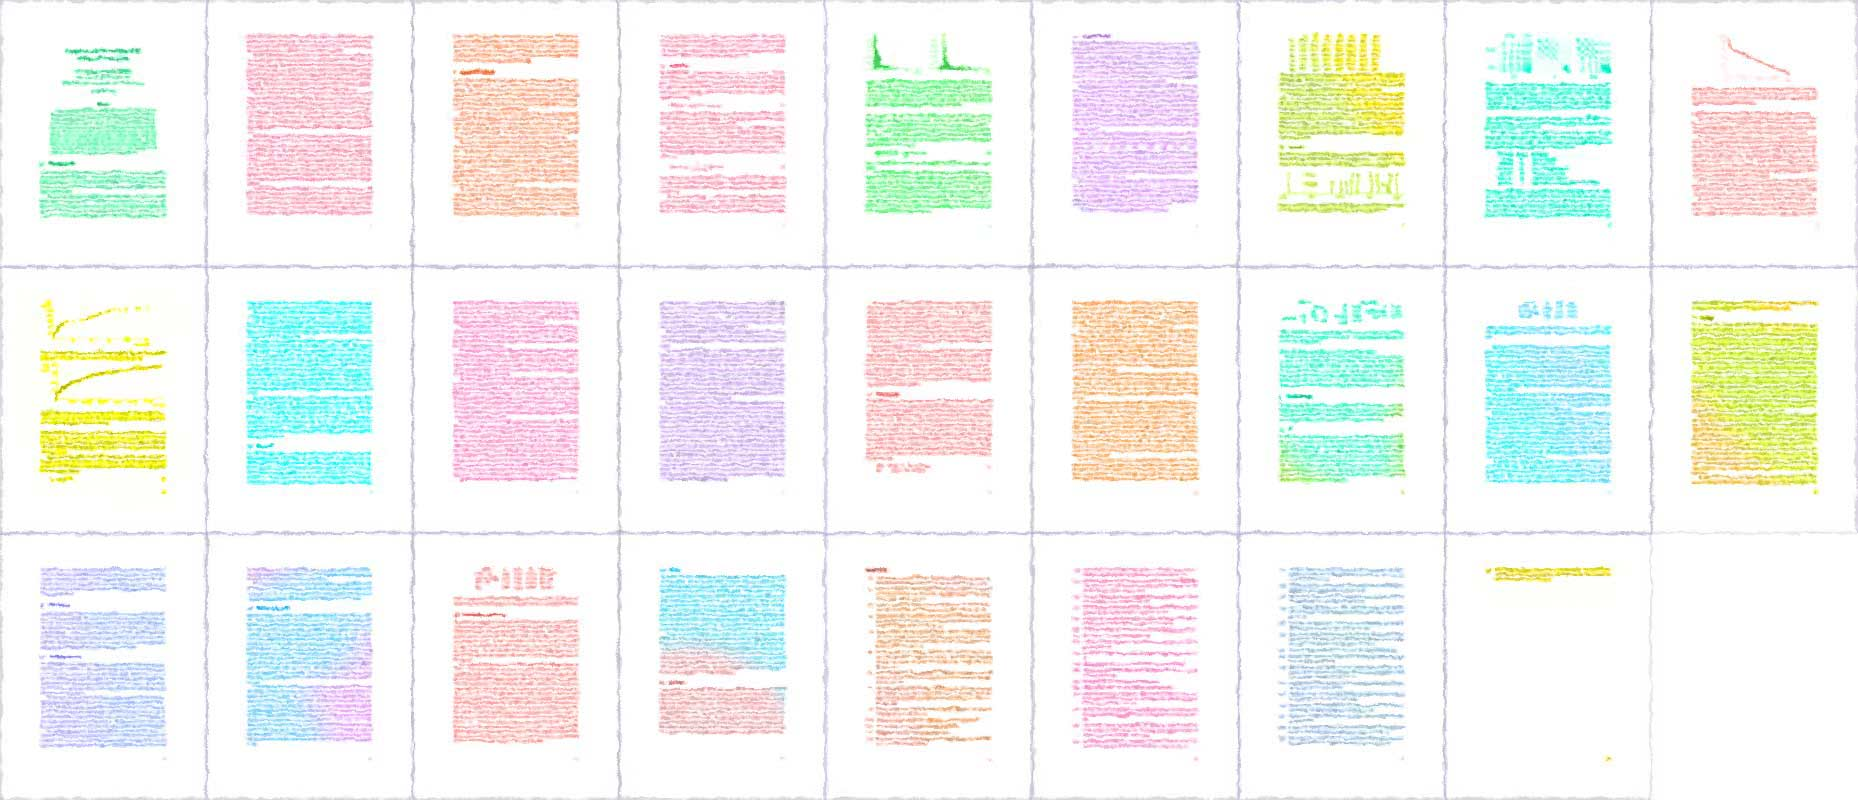 multicolored thumbnails of the papers of the paper